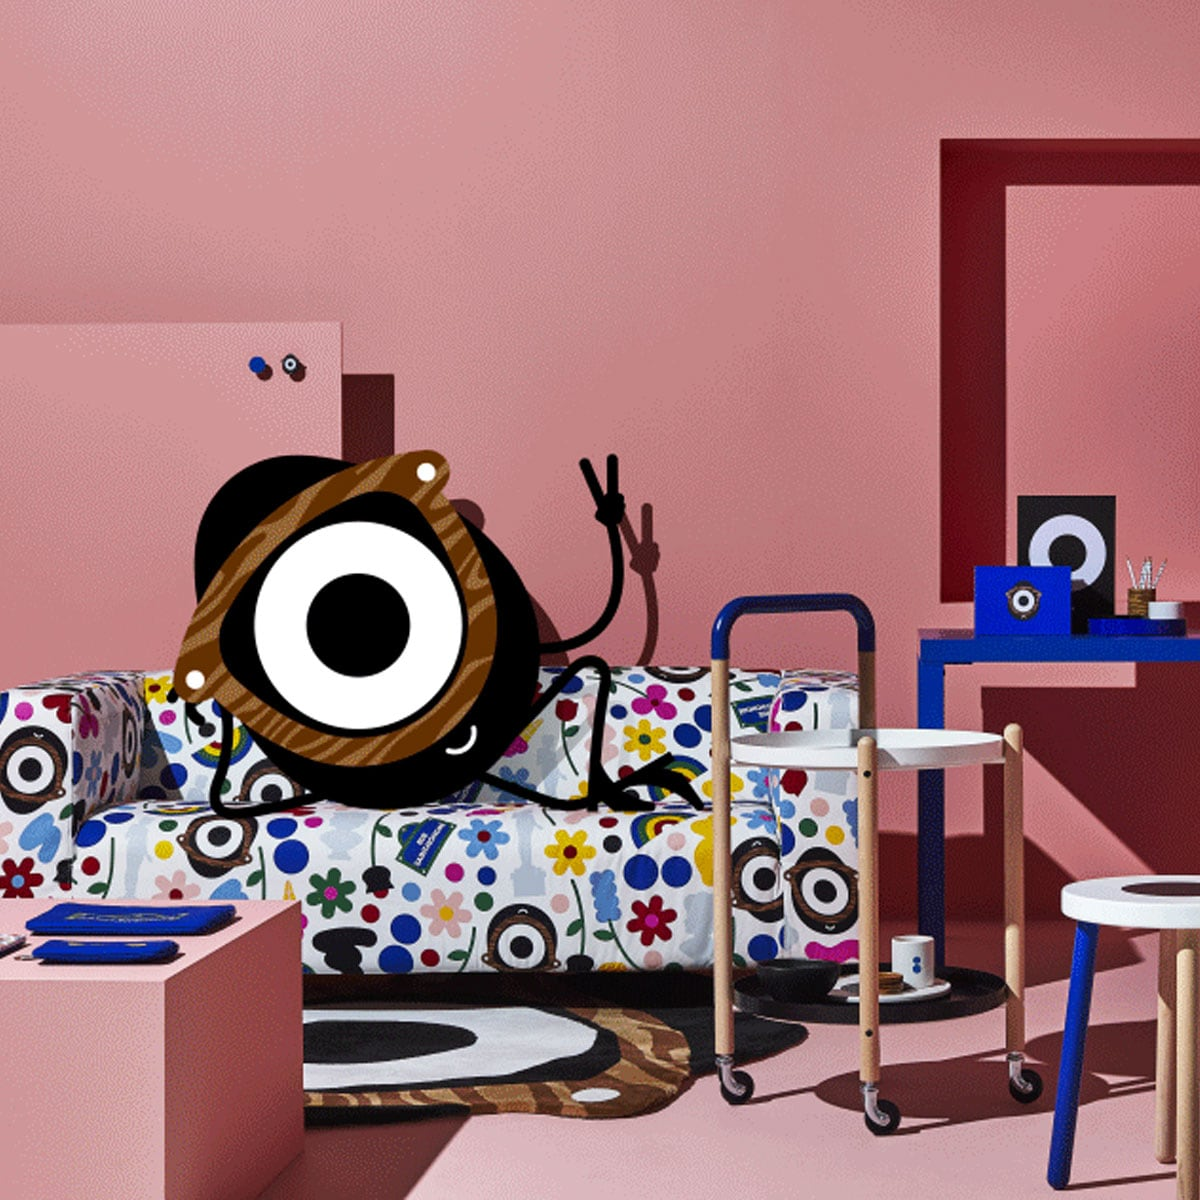 A playful living room with pink walls showing the animated Darcel Disappoints relaxing in FÖRNYAD sofa.